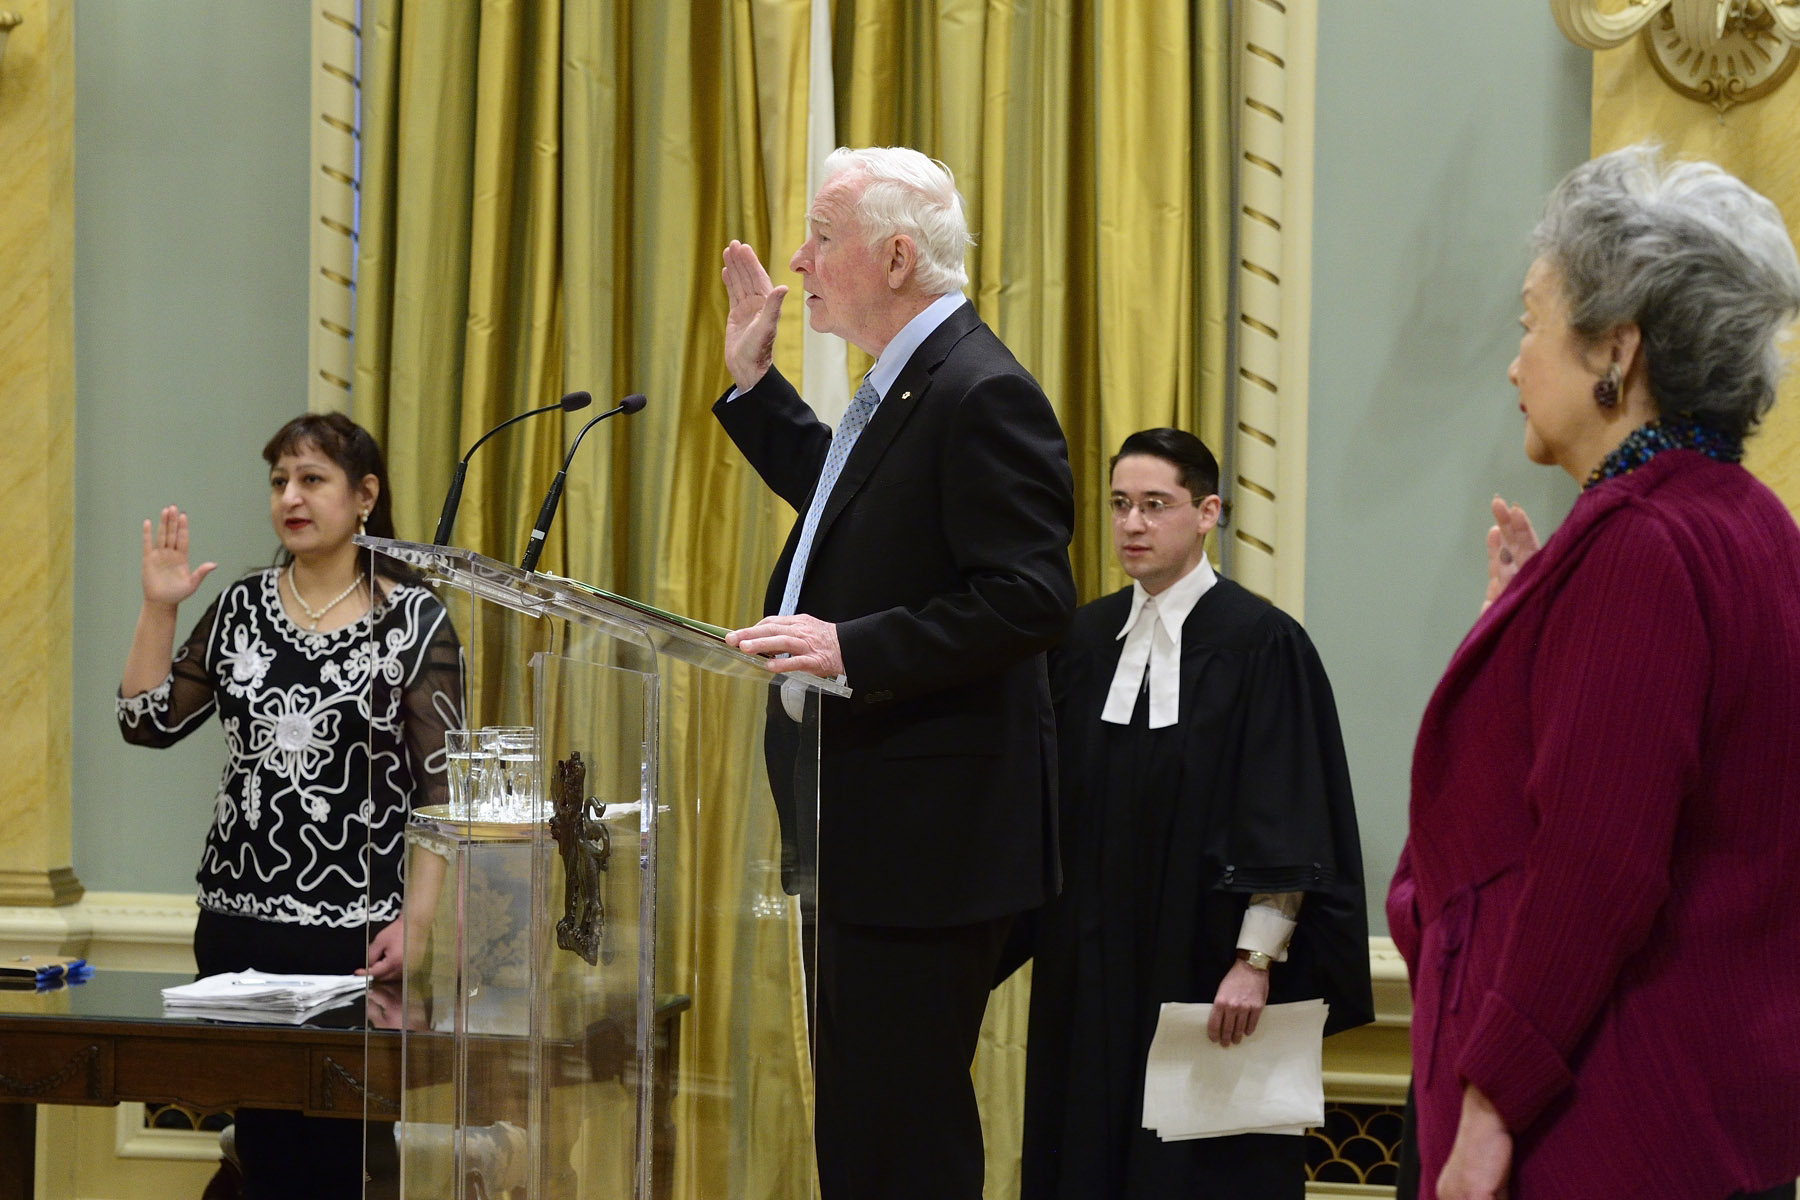 The Governor General administered the Oath of Citizenship and conferred citizenship certificates to 37 new Canadians.